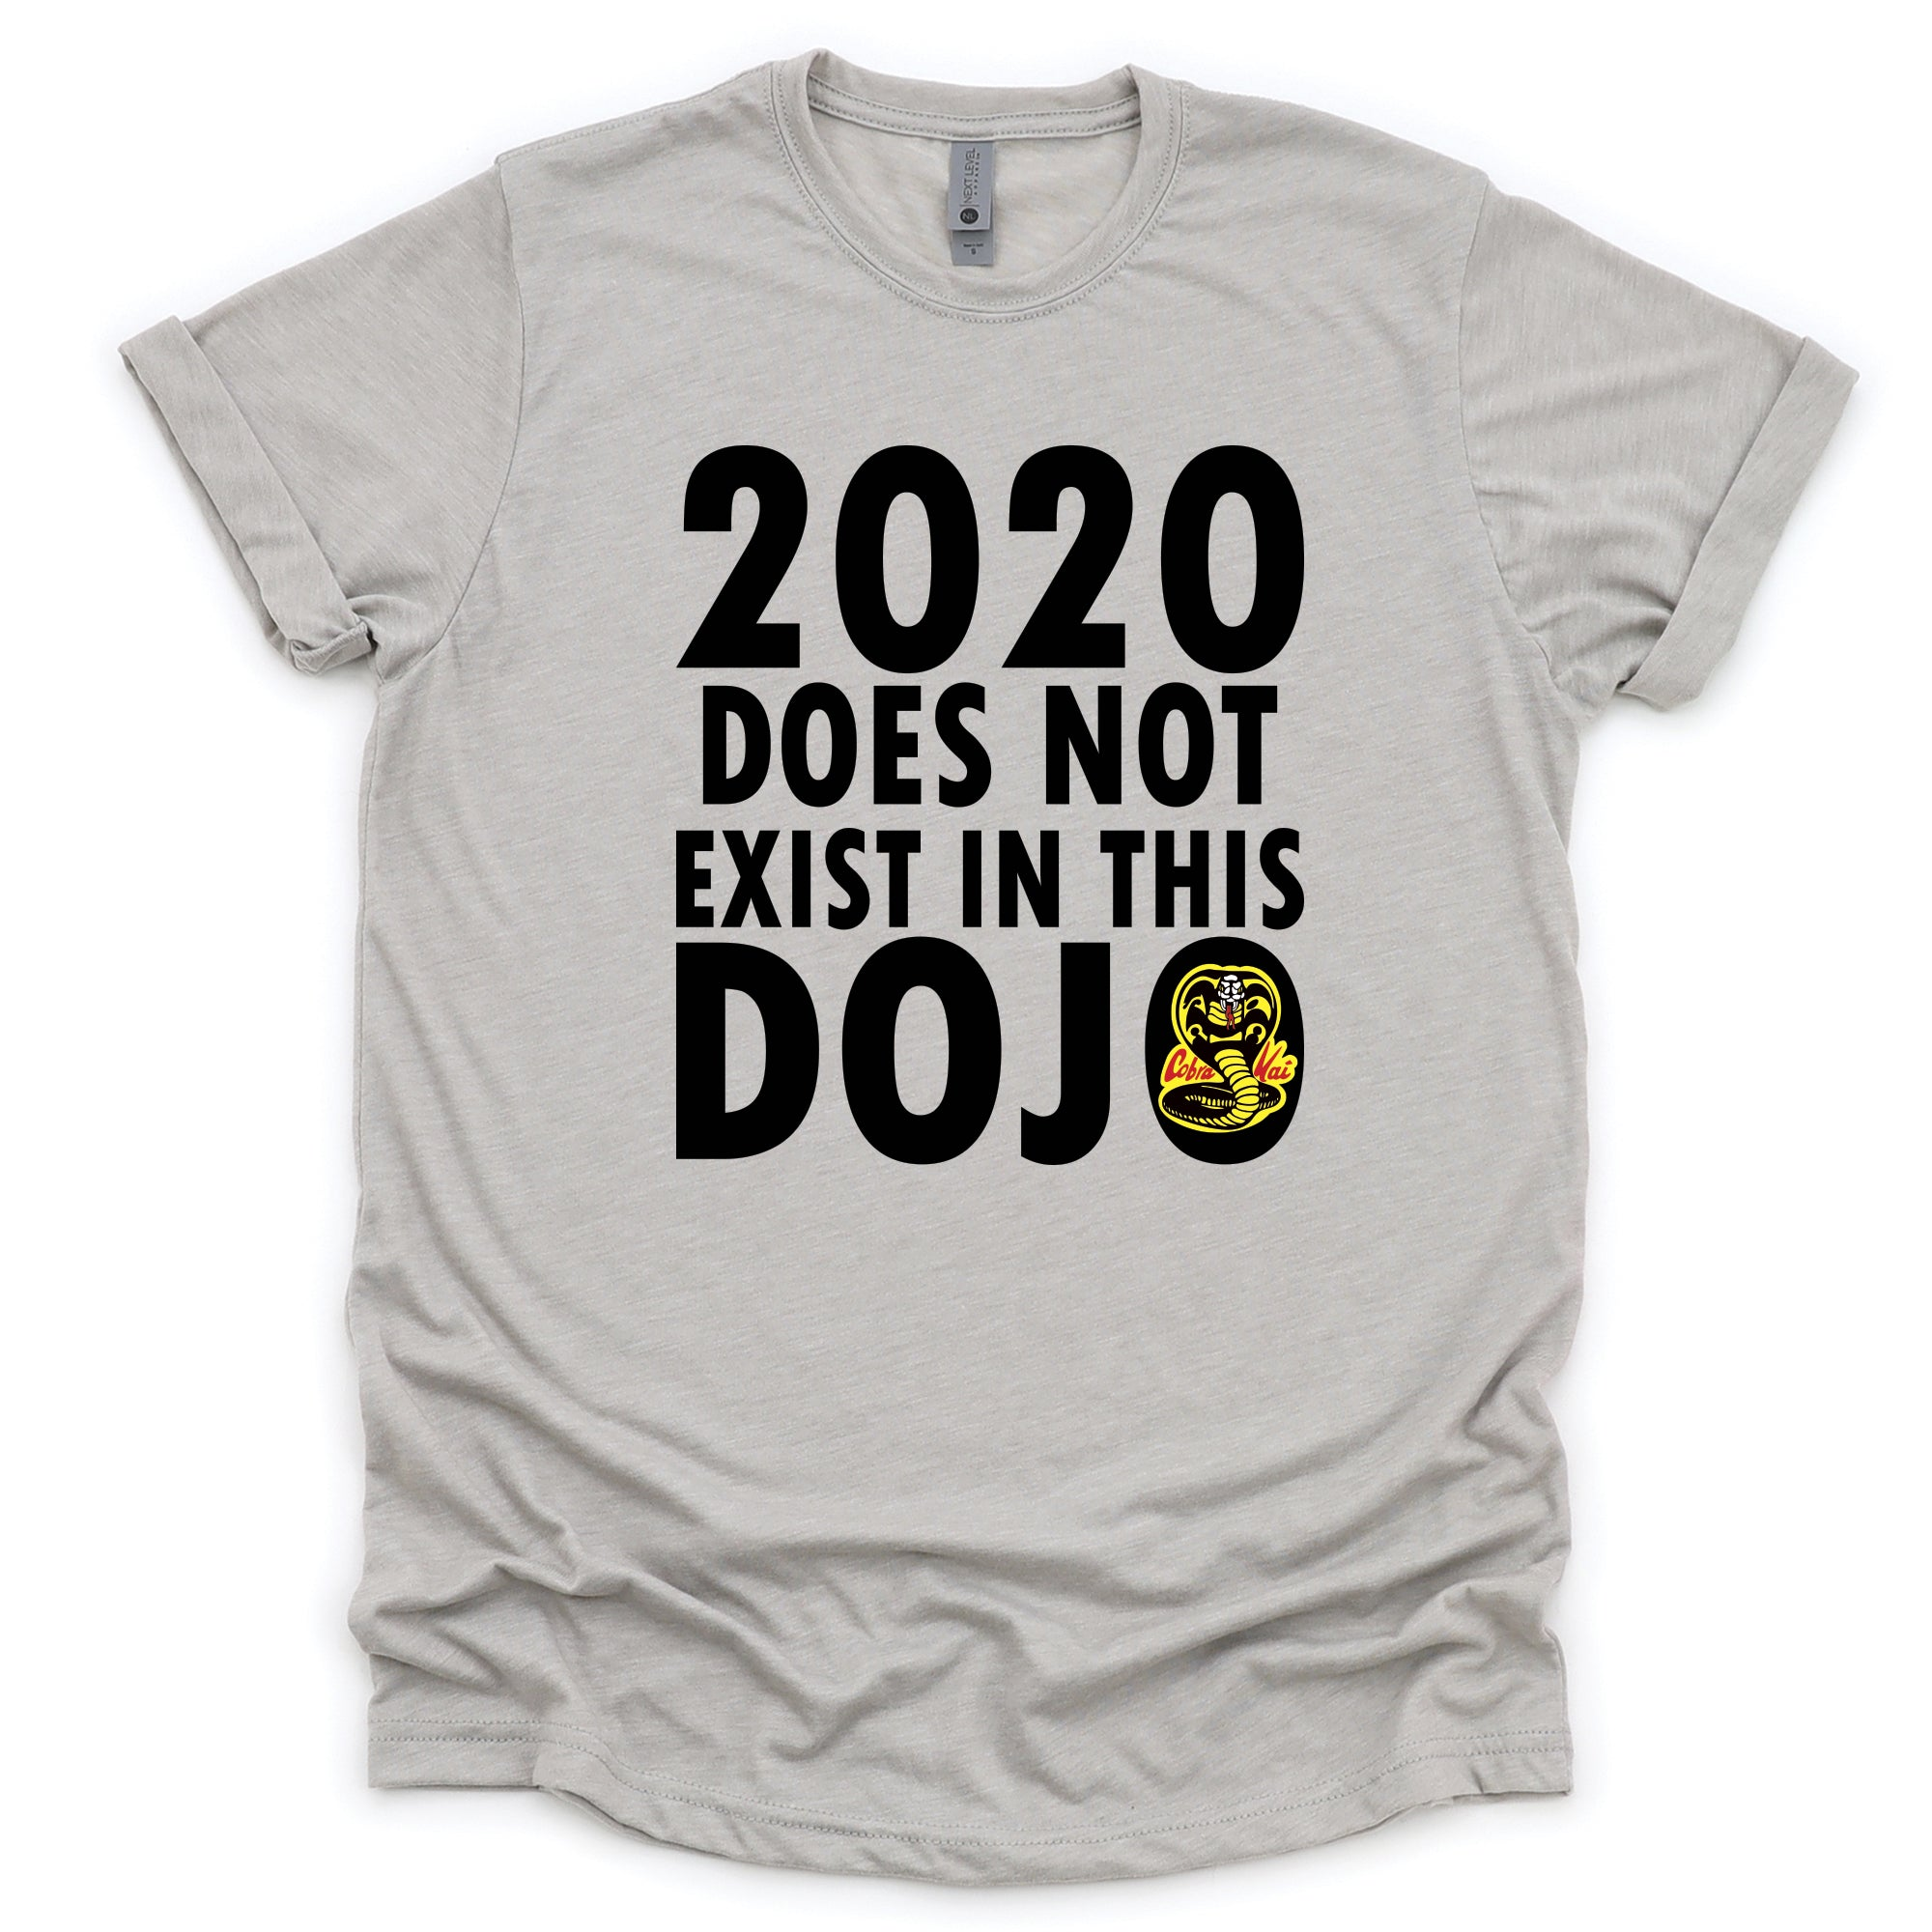 2020 Does Not Exist In This Dojo